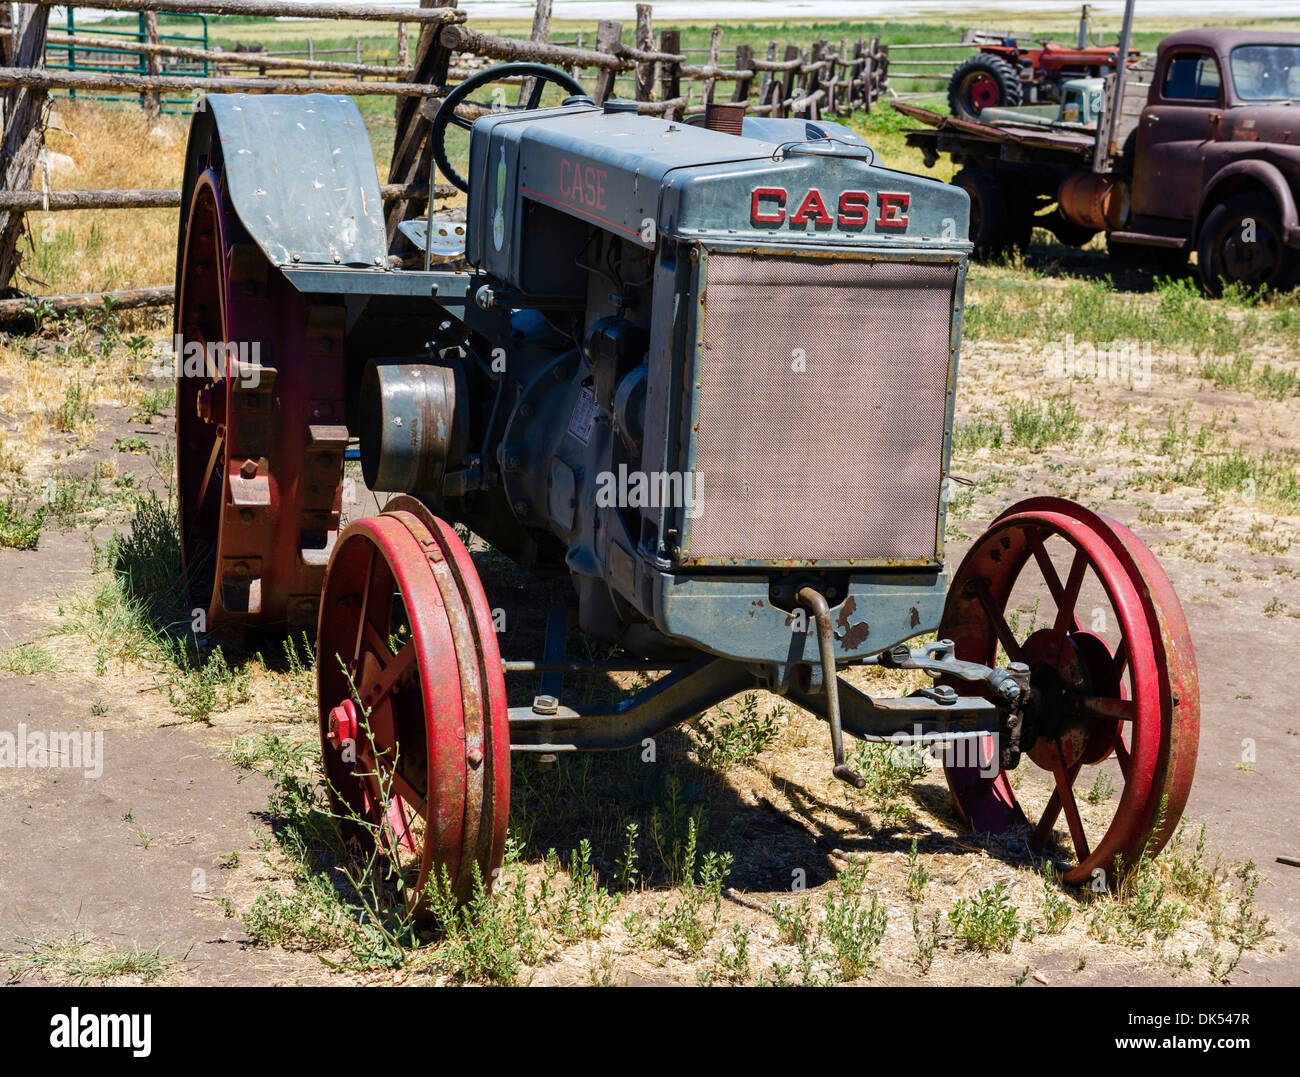 Old Case tractor at the Fielding Garr Ranch, Antelope Island, Antelope Island State Park, Great Salt Lake, Utah, USA - Stock Image